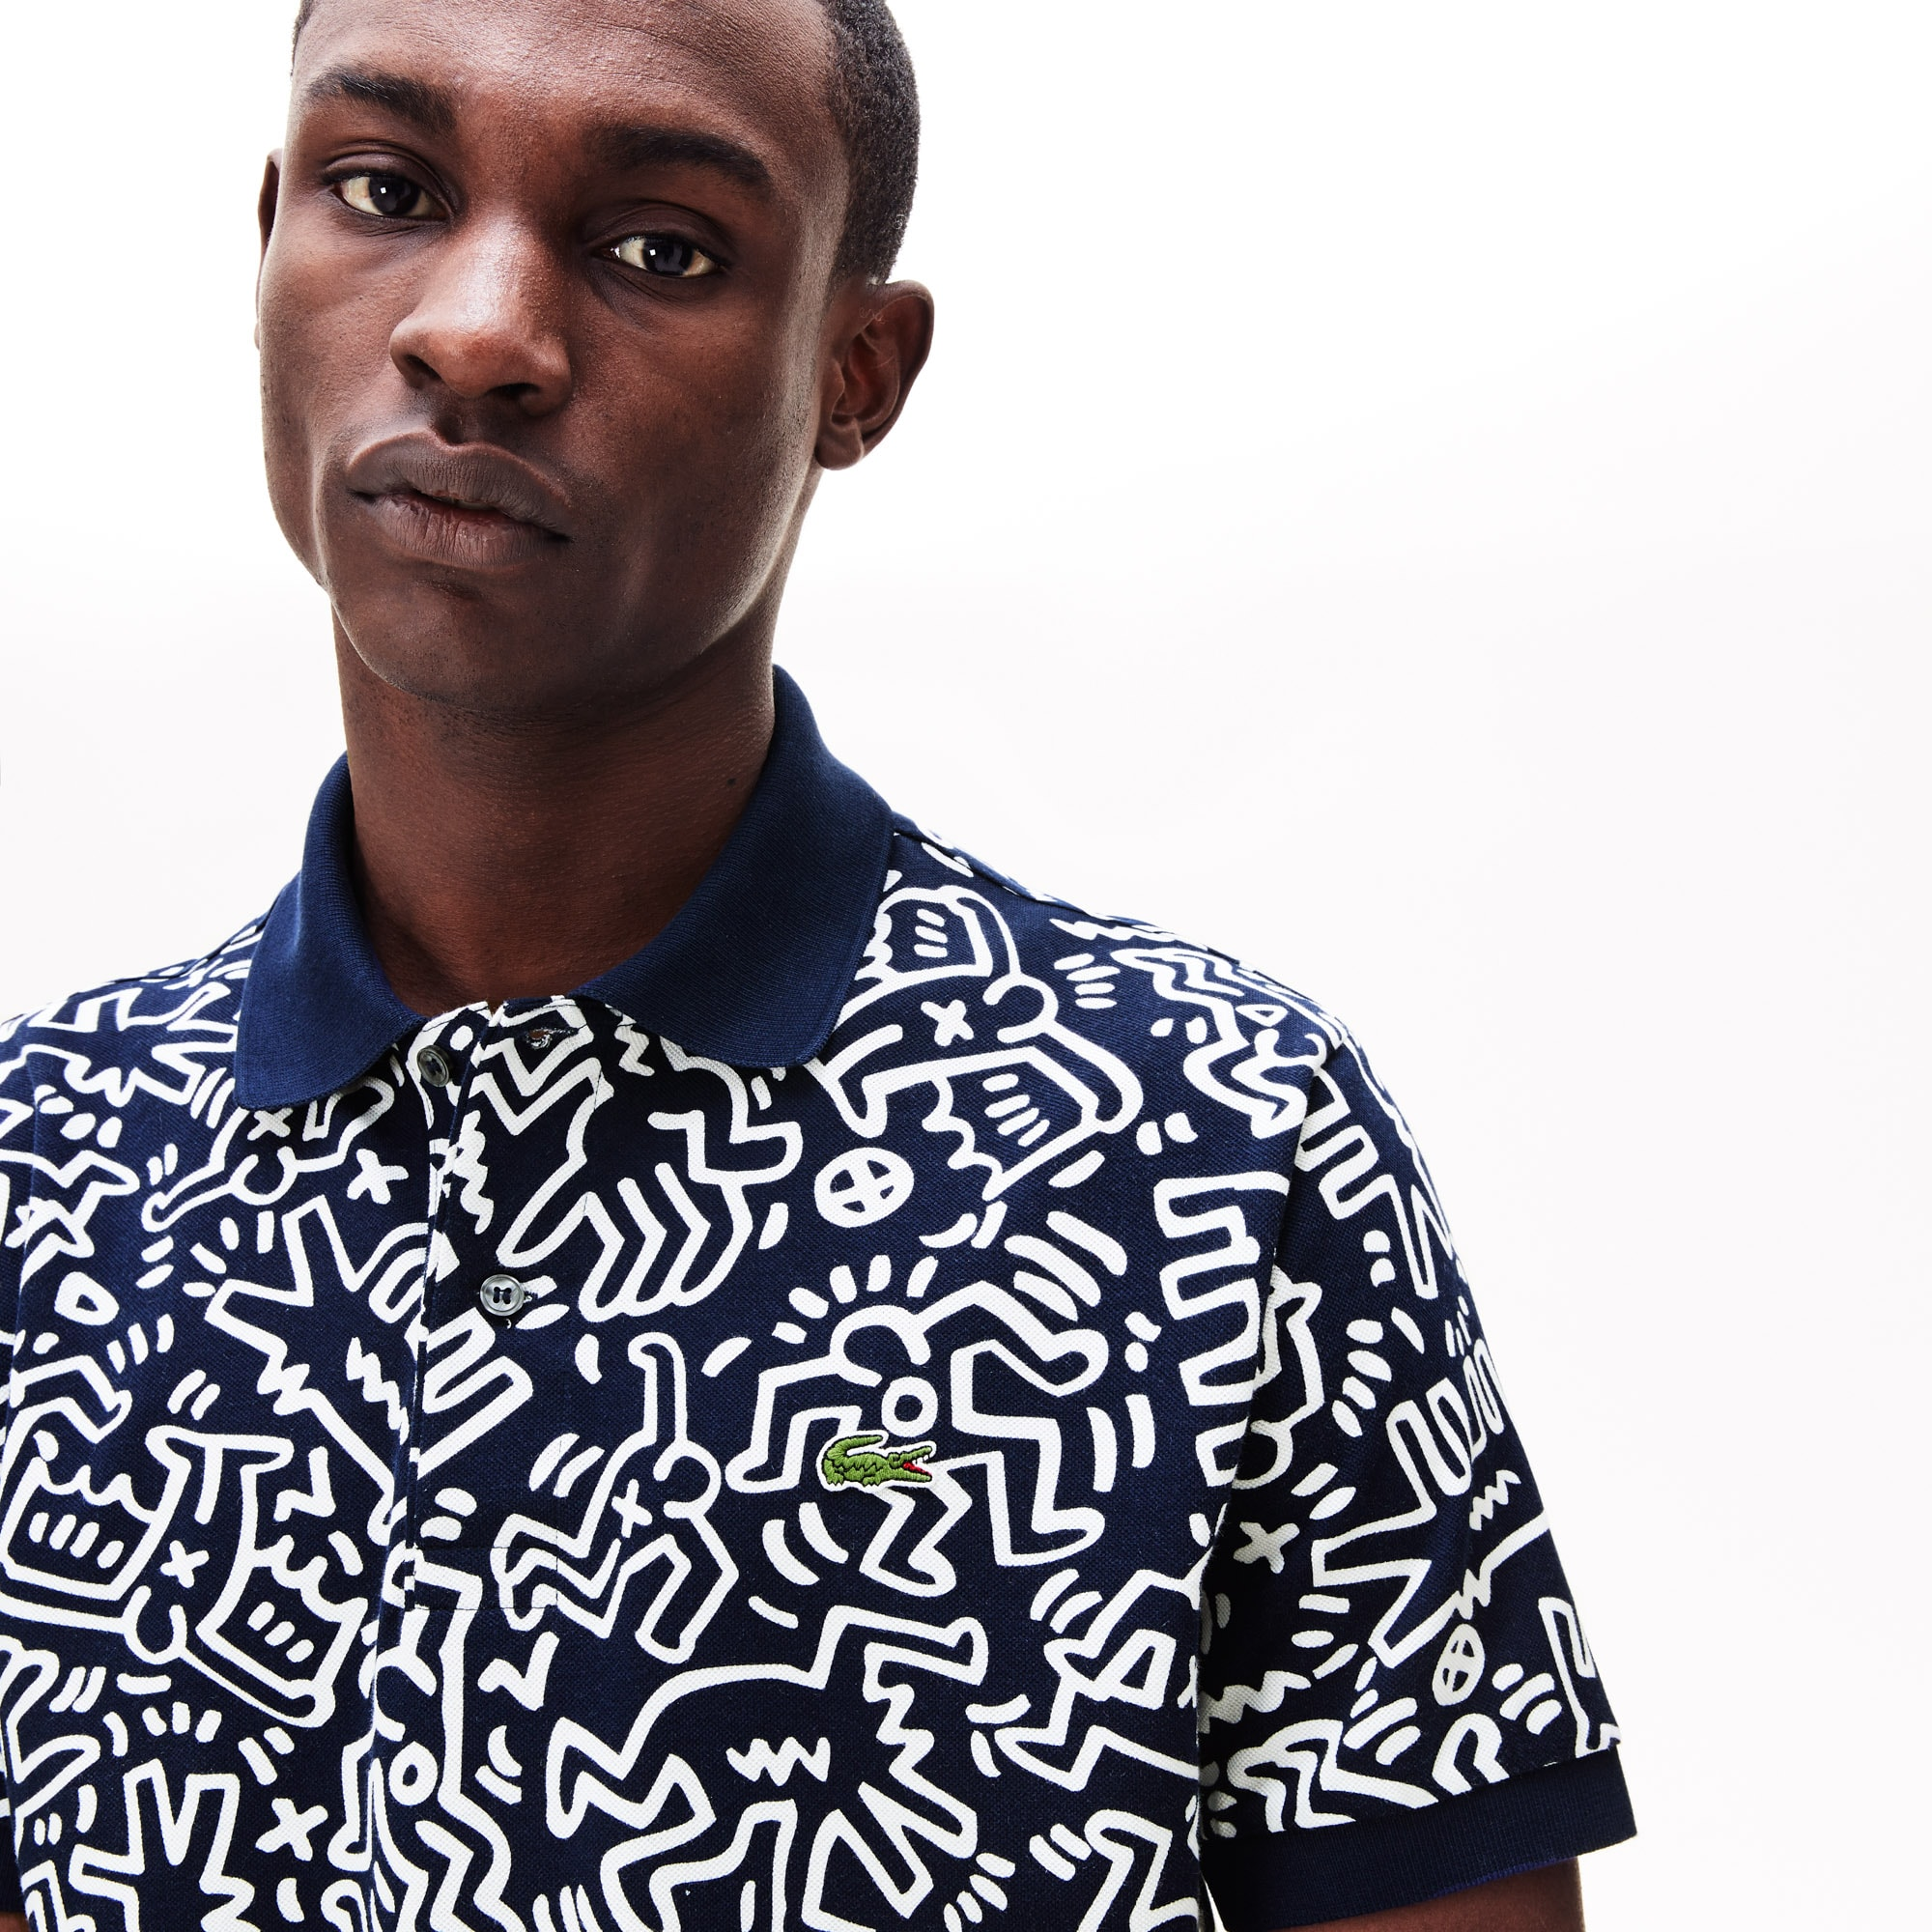 Keith Keith X Keith X X Haring Haring Lacoste Lacoste Lacoste hCsQrdt